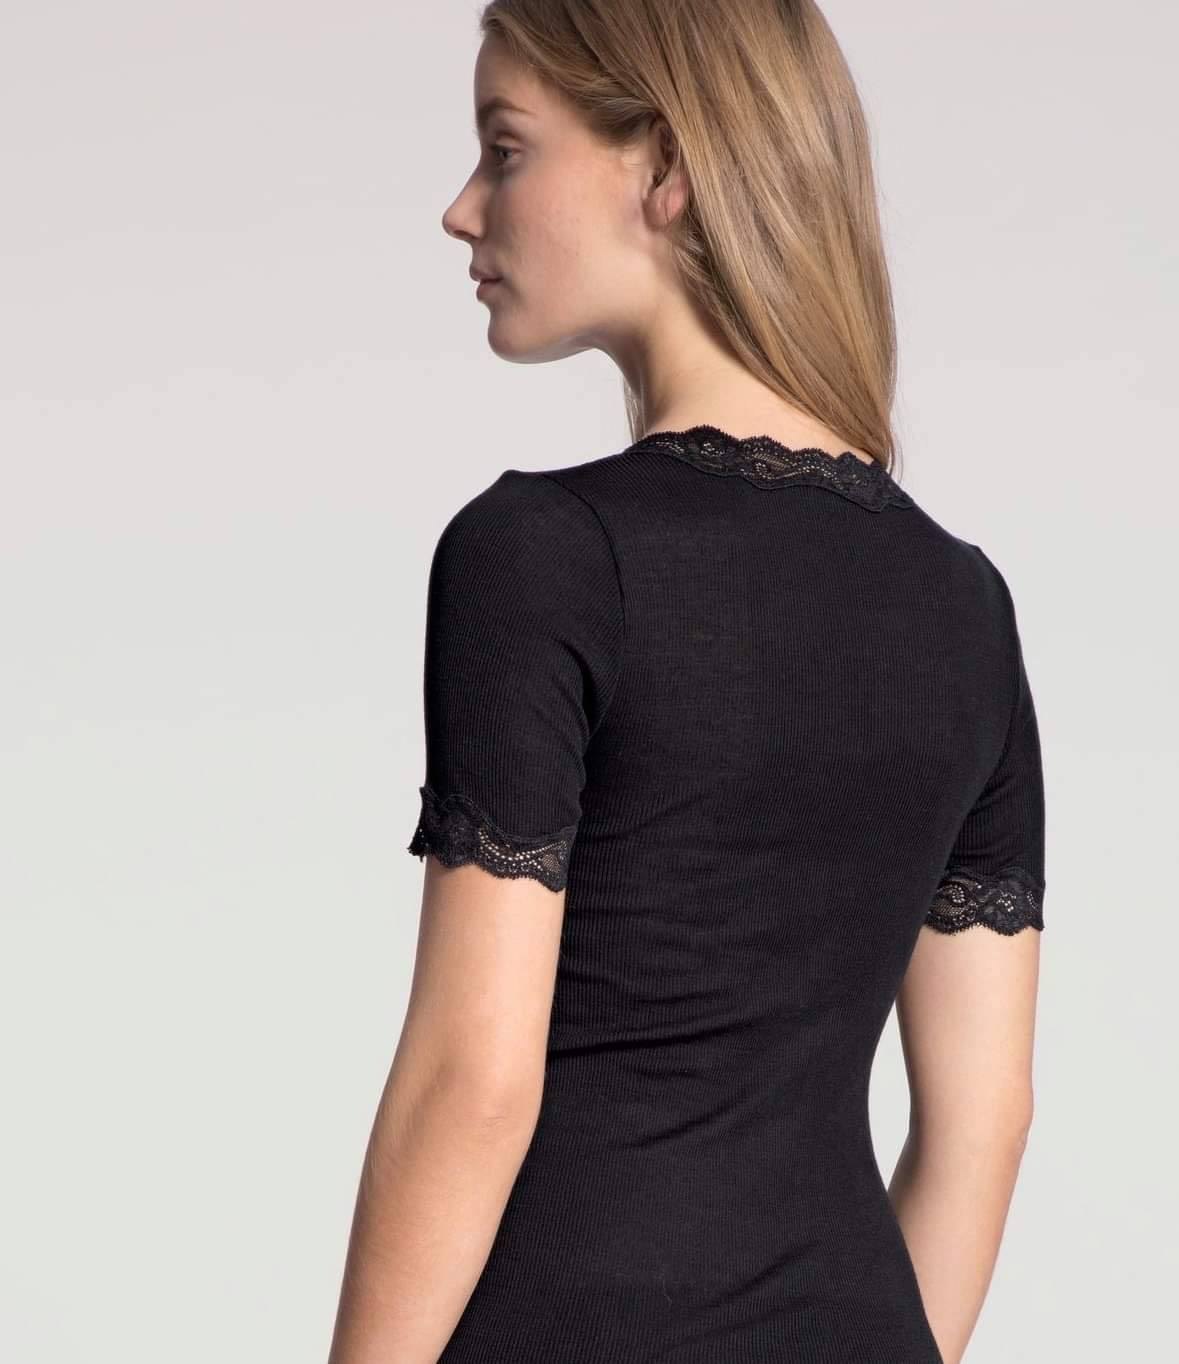 gallery-2081-for-602AA8824